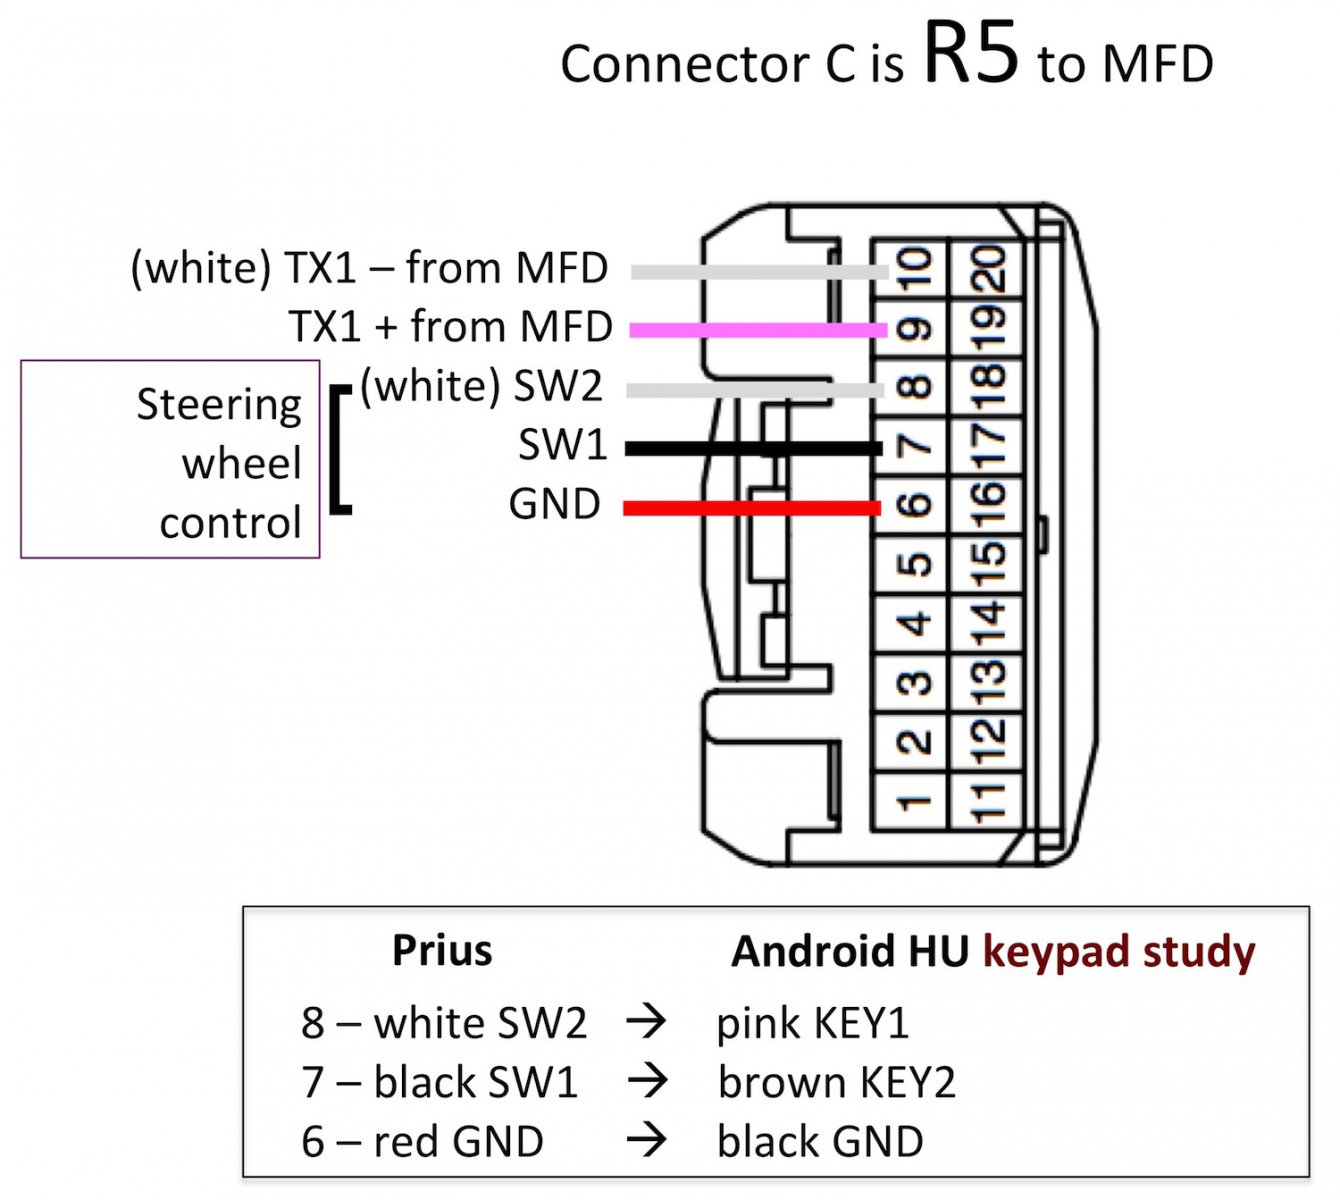 hight resolution of steering wheel control with android hu without metra 2010 mazda 6 stereo wiring diagram 2007 mazda